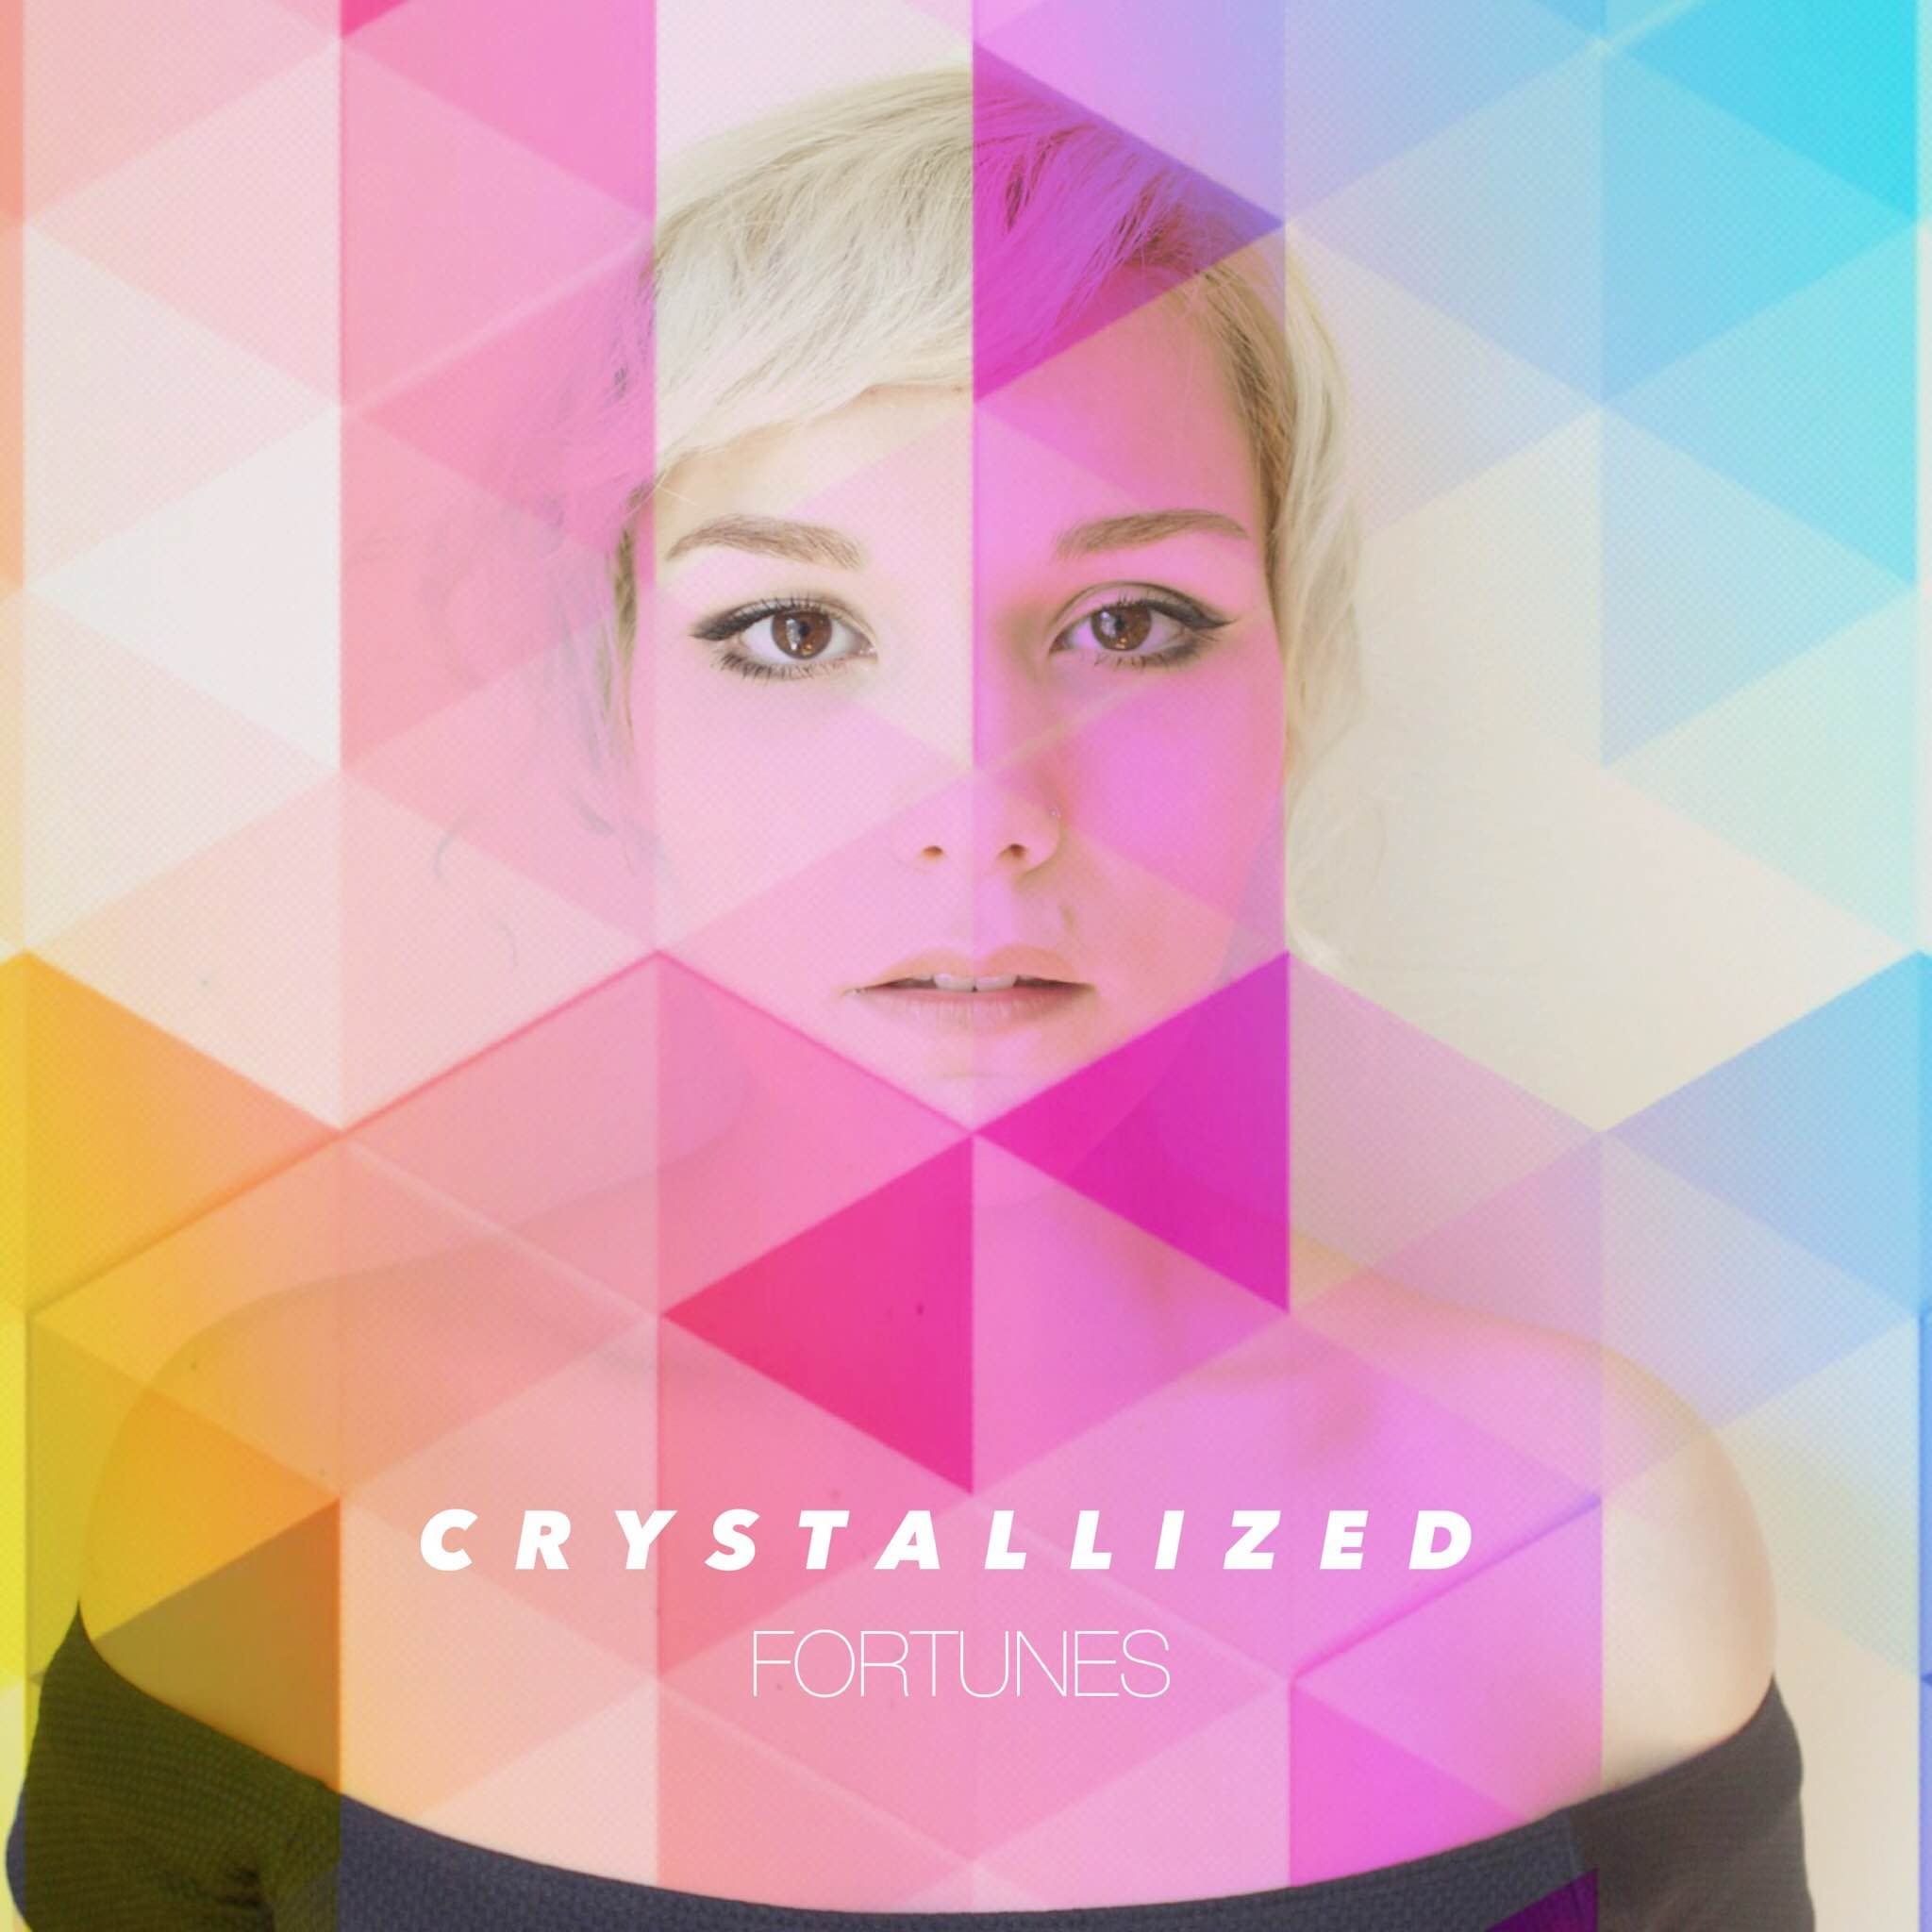 crystallized  -  (FORTUNES)  available tonight at midnight!